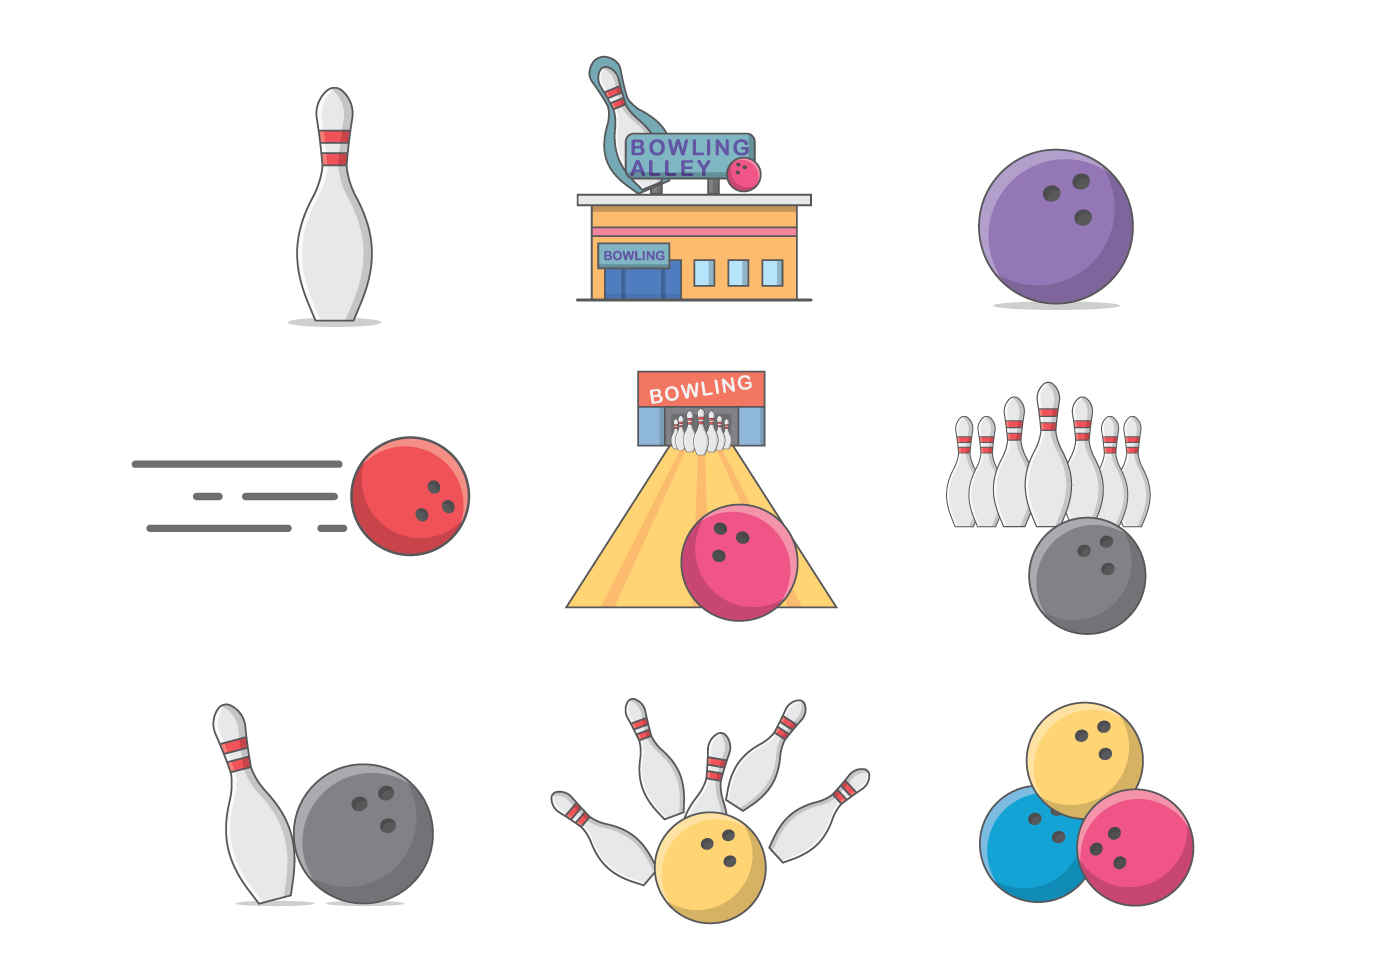 bowling pins free vector art  1840 free downloads Bowlin Alley bowling alley lane clipart